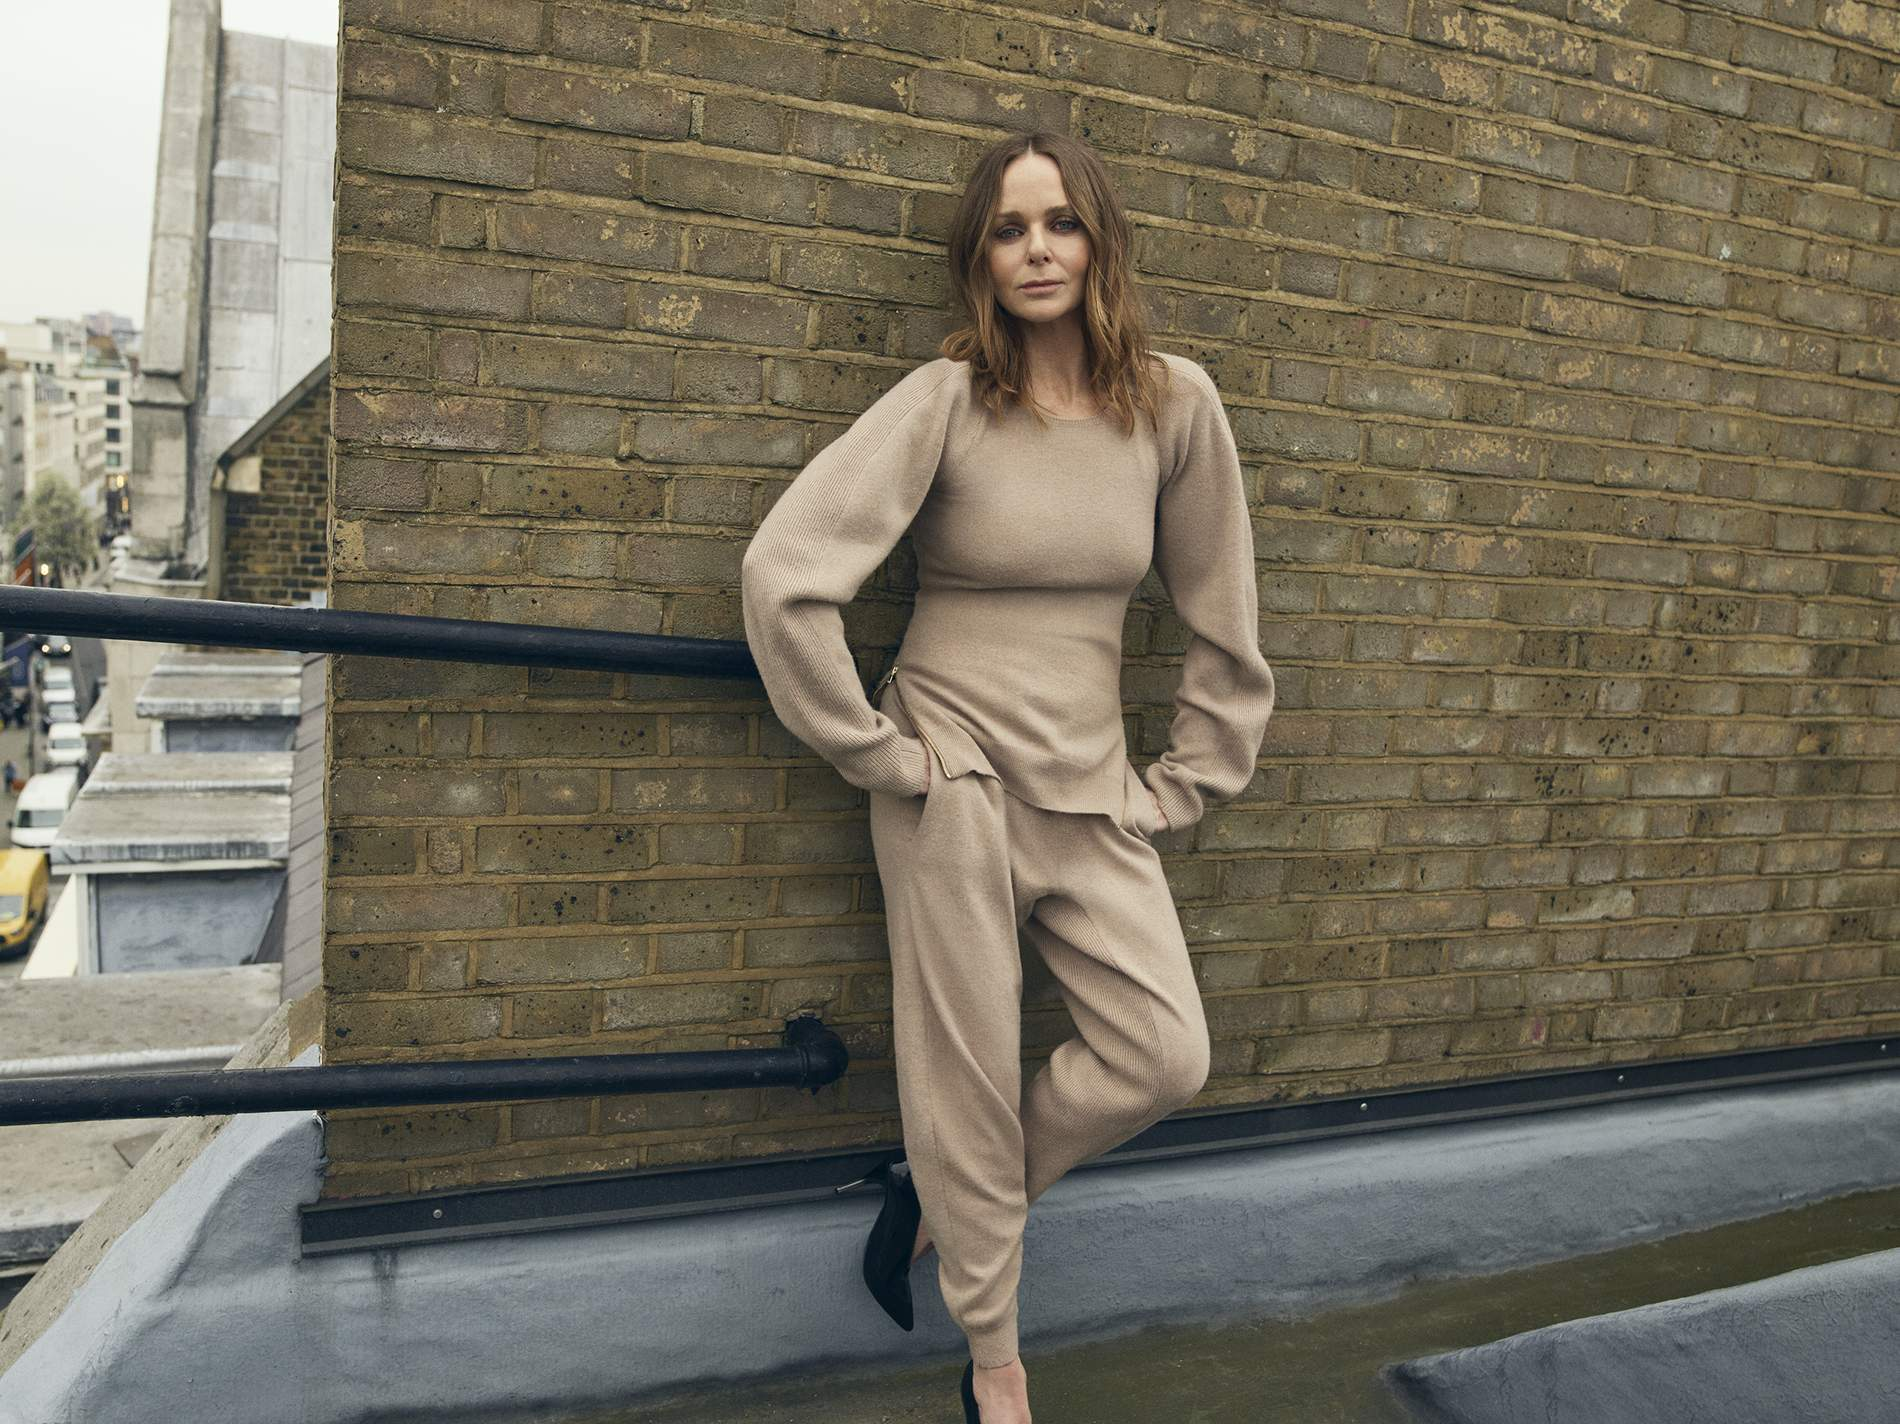 Stella MCCartney takes a brief pause in her busy life. Image by Matthew Sprout.